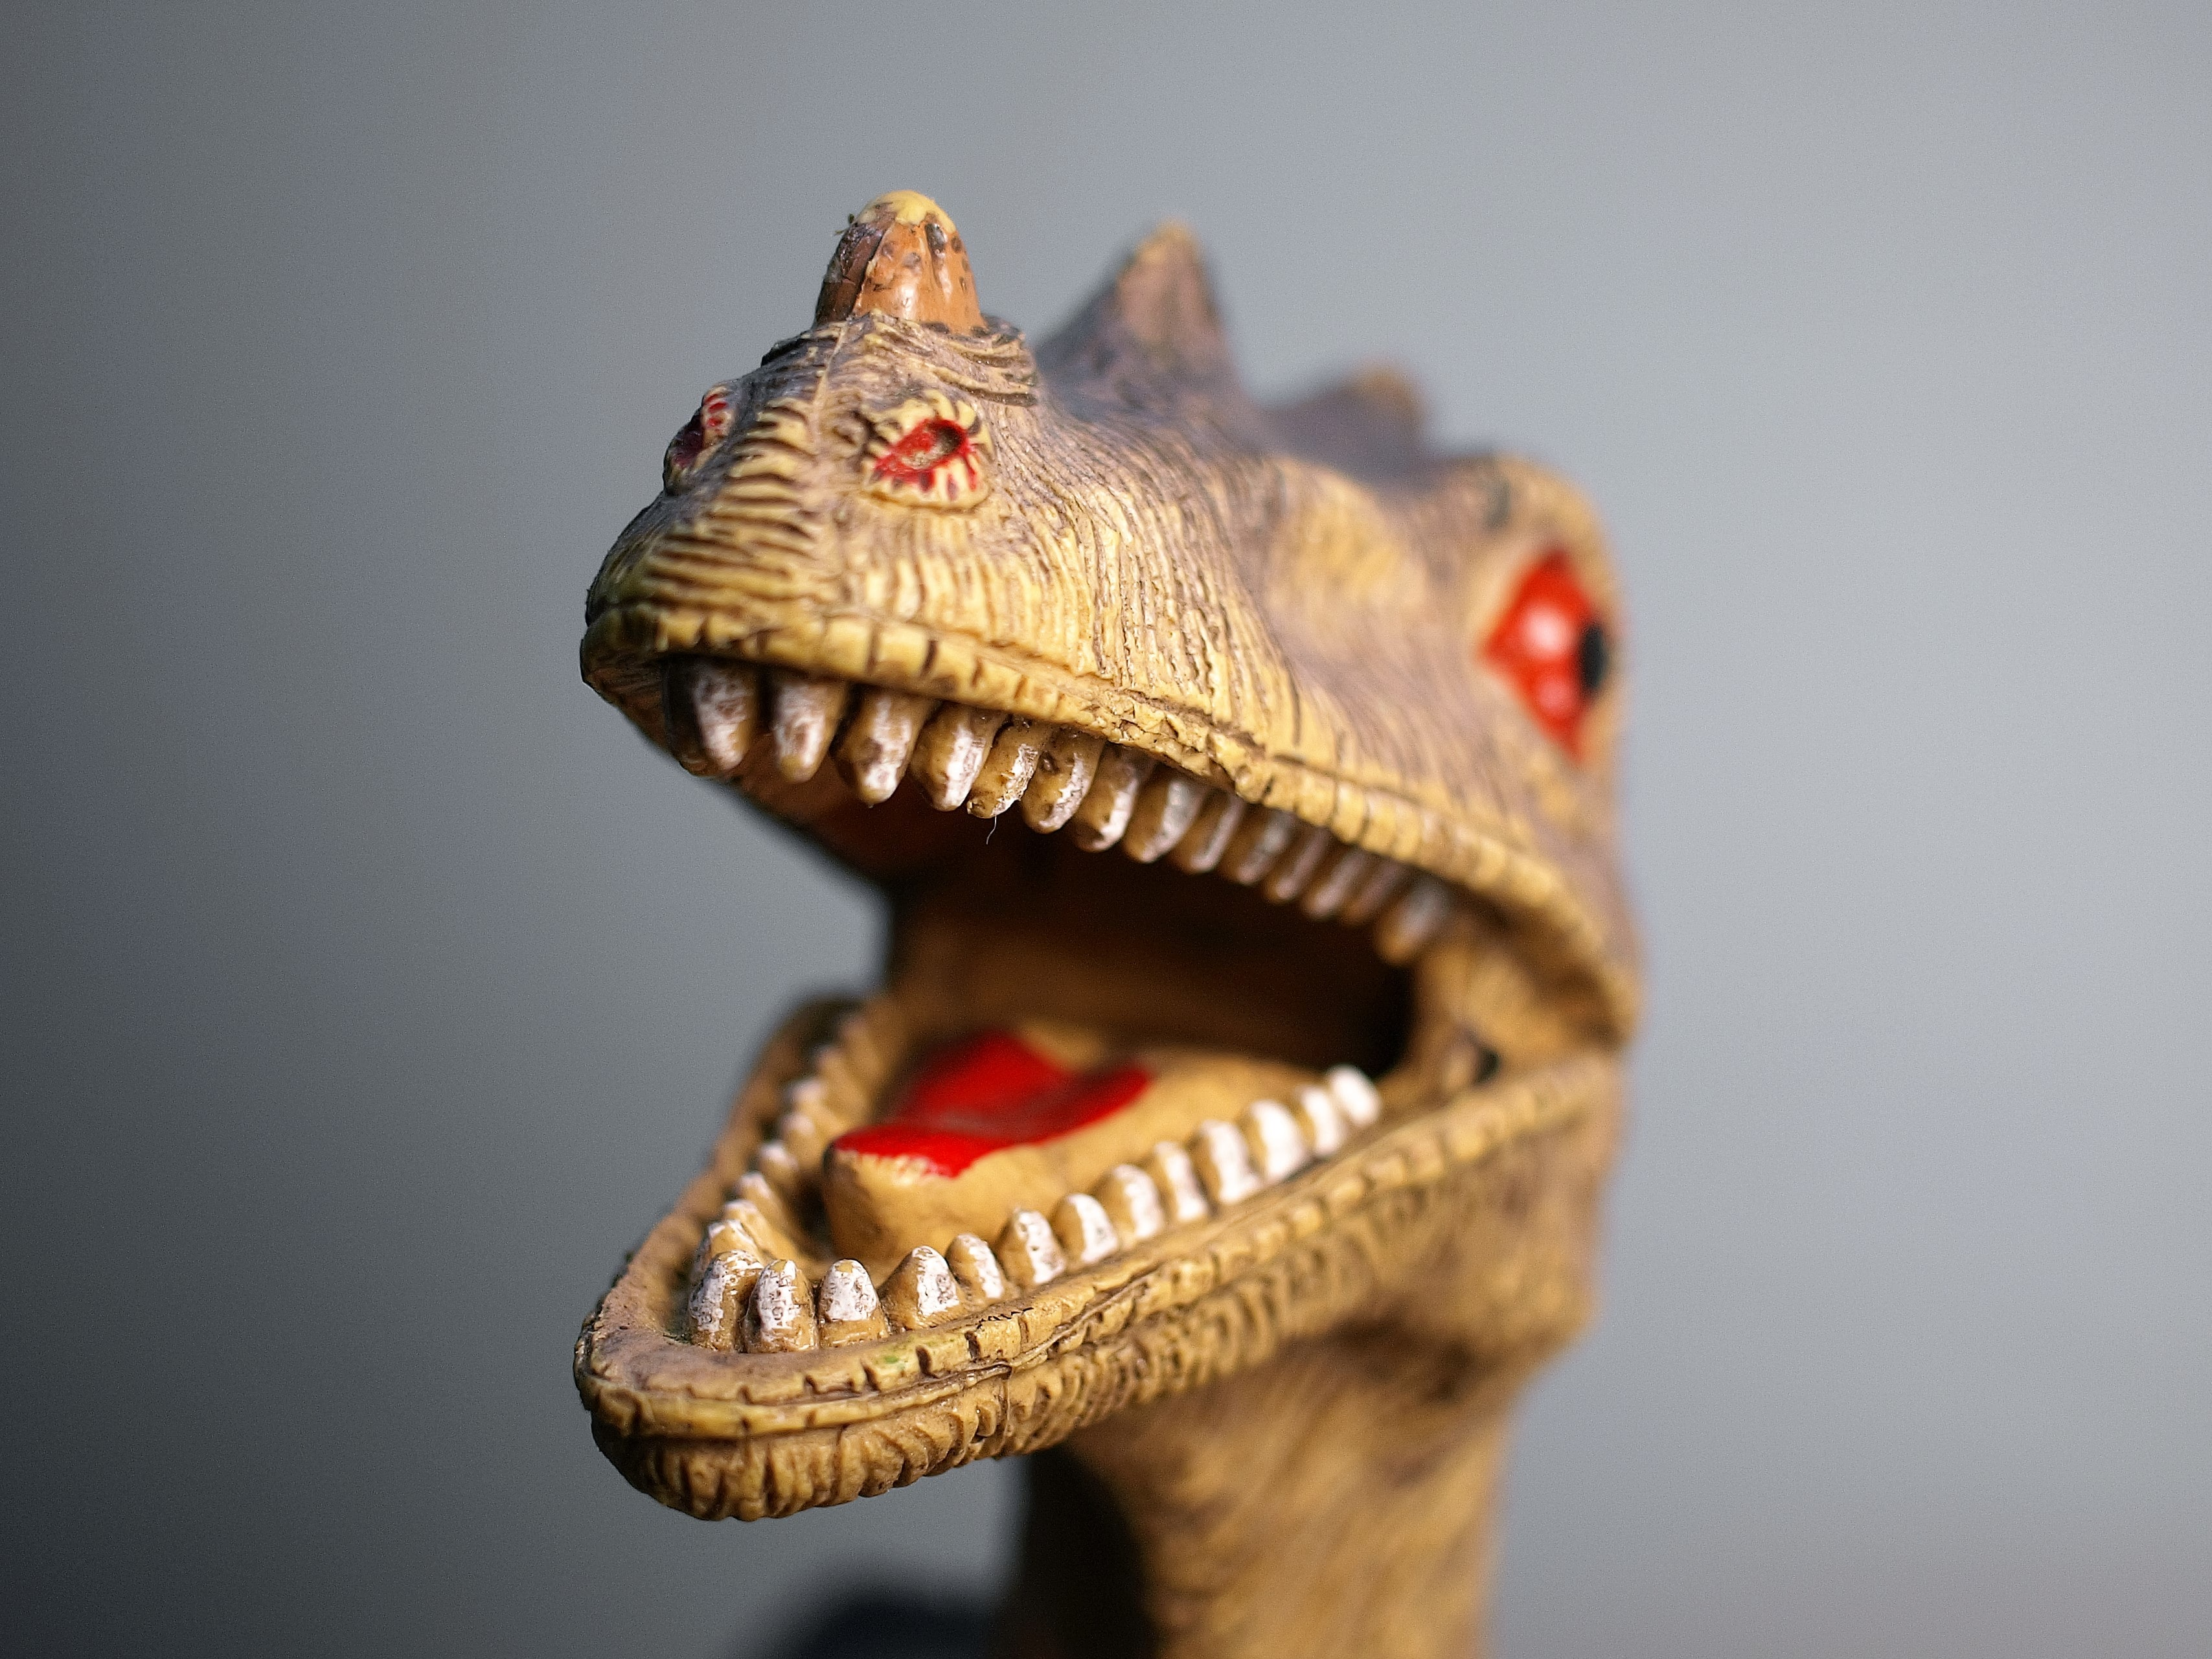 The head of a plastic dinosaur toy with the paint wearing off